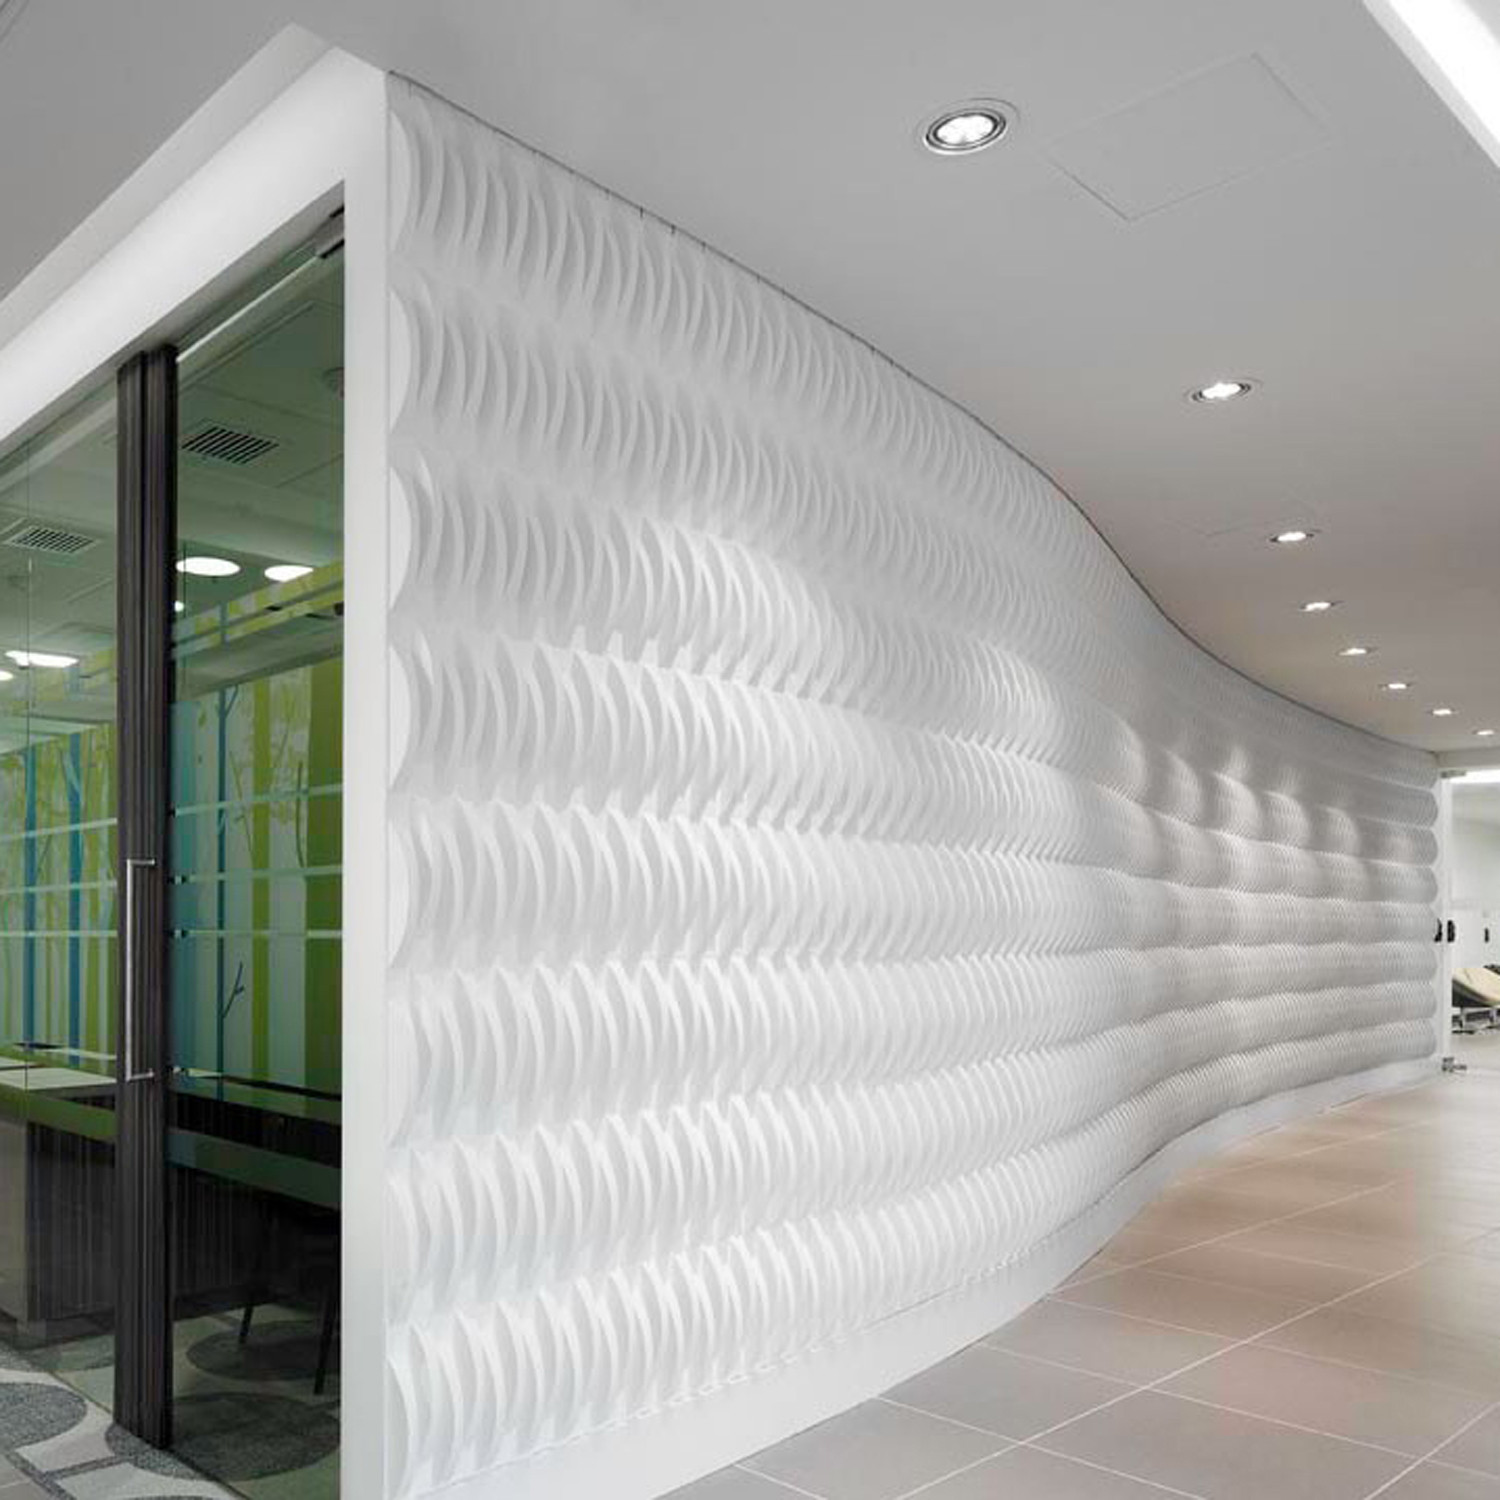 paperforms  acoustic weave  mio culture  touch of modern - paperforms  acoustic weave